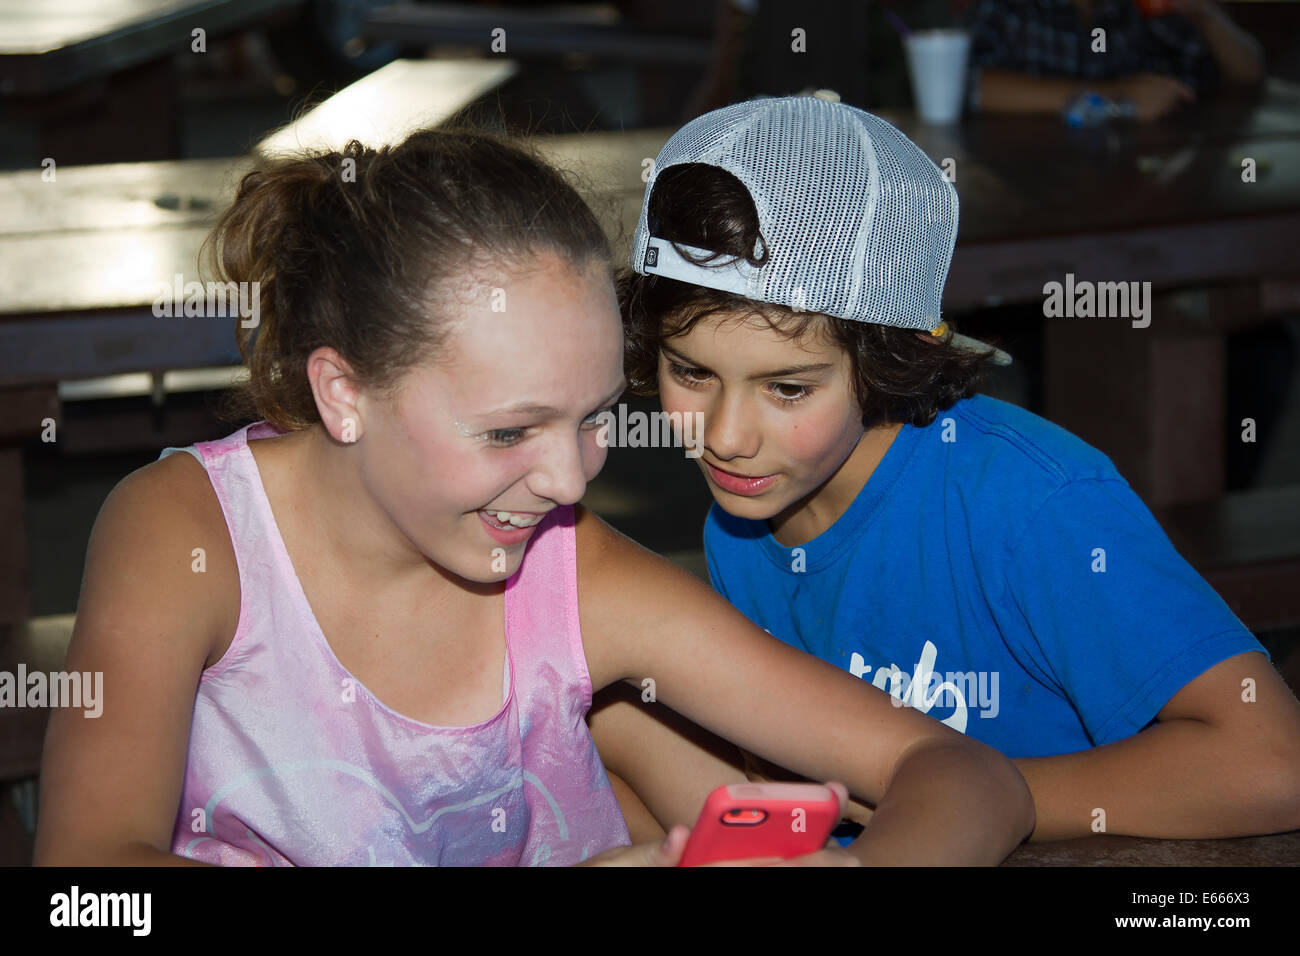 A boy and girl laughing as they are texting and having fun with a cellphone. - Stock Image